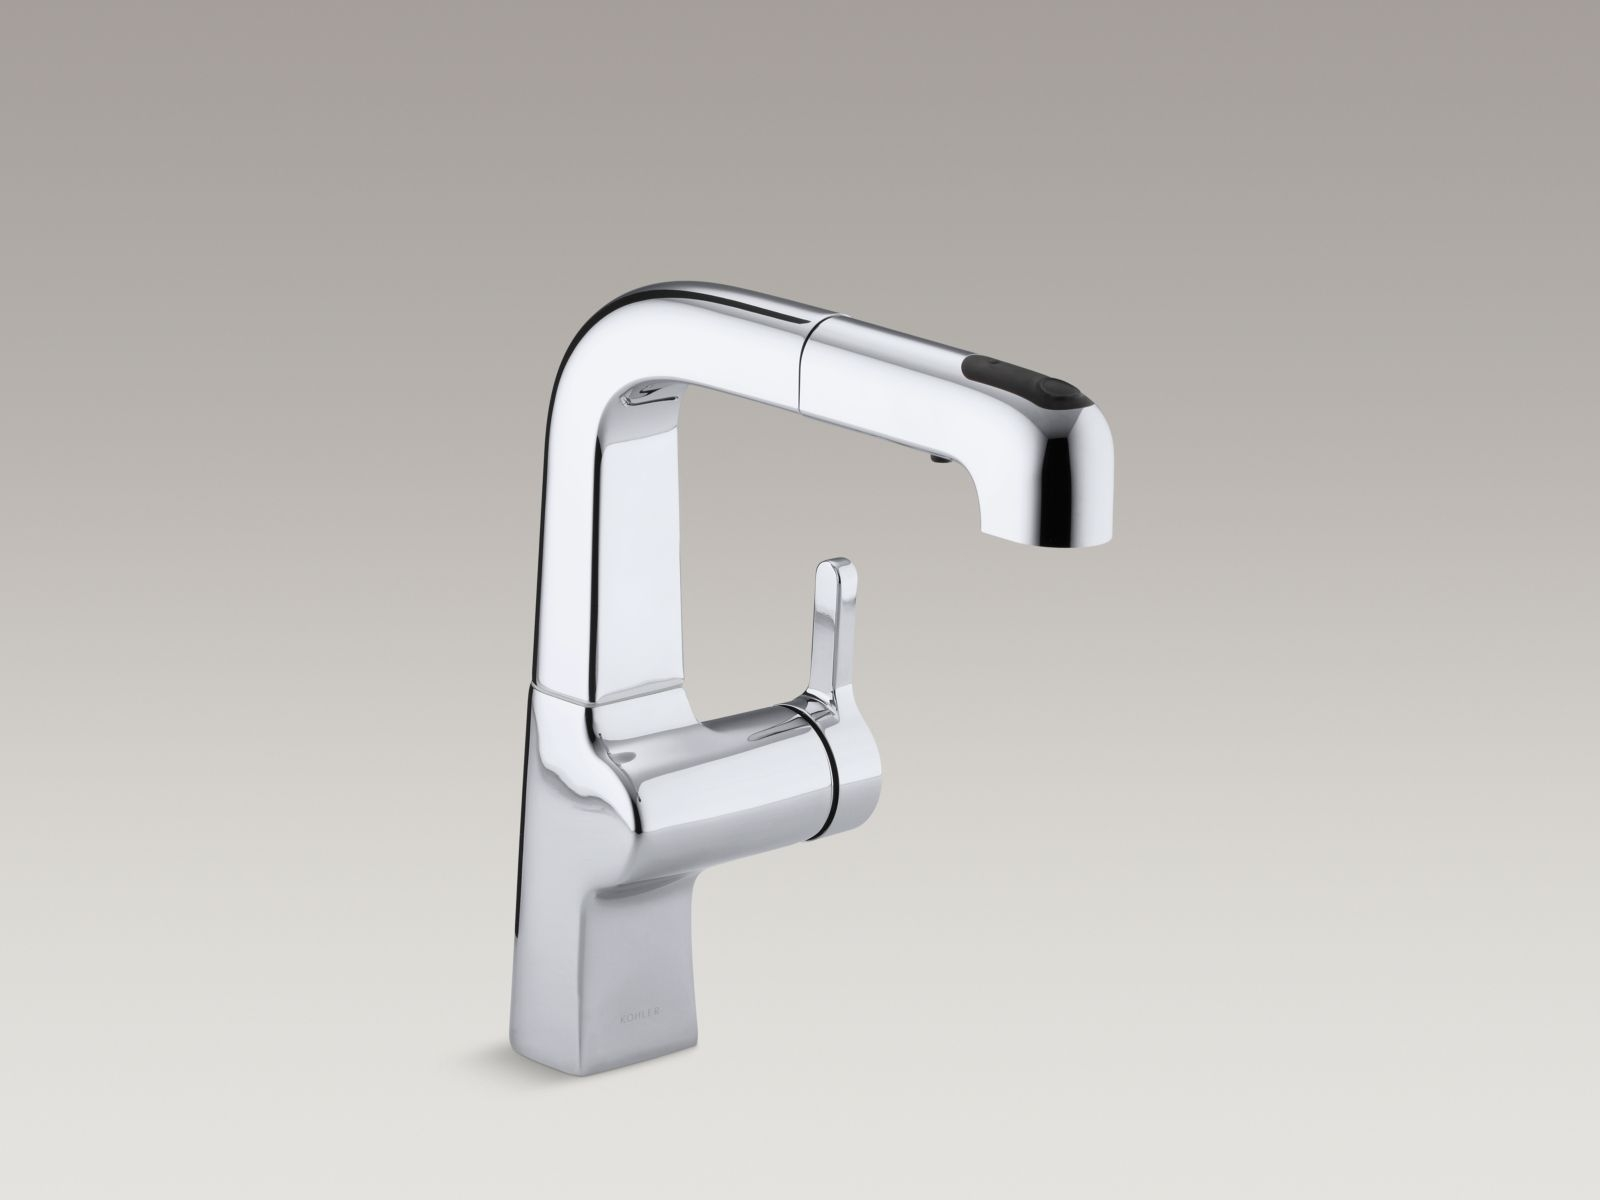 Ideas, kohler evoke bar faucet kohler evoke bar faucet buyplumbing category pull out spout 1600 x 1200  .